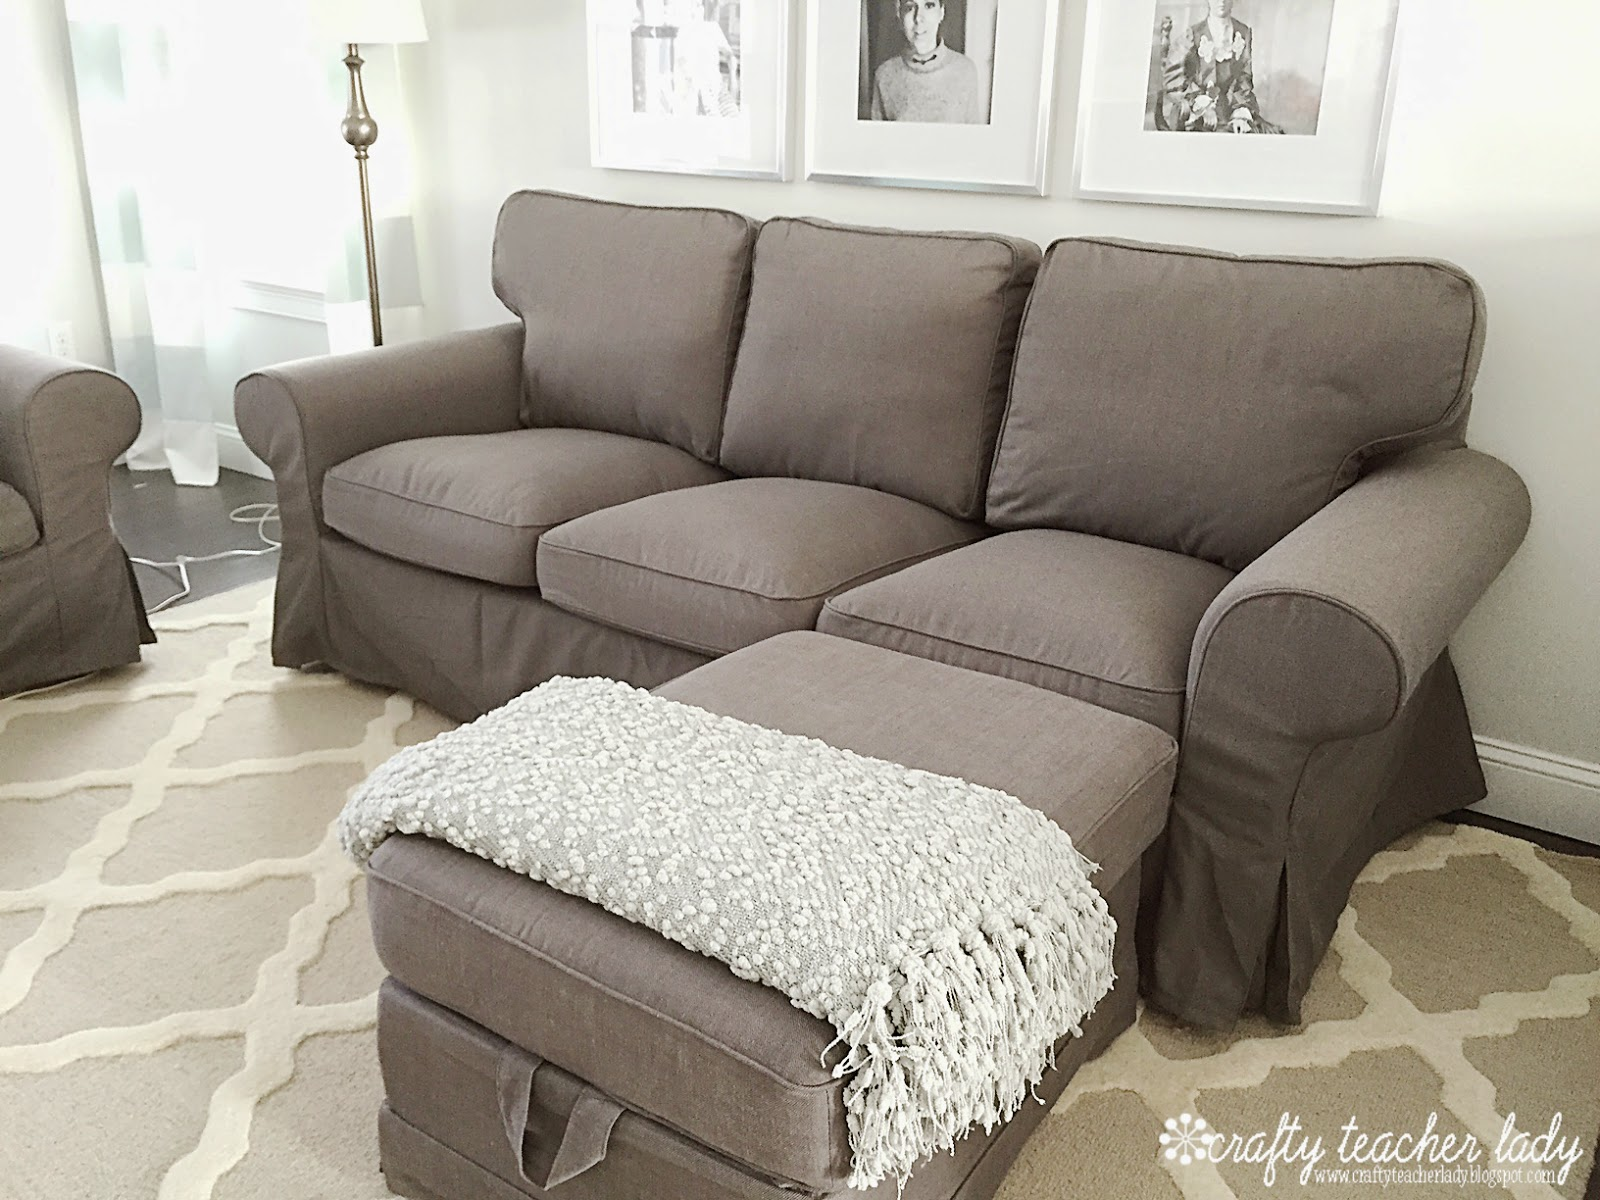 Crafty Teacher Lady Review Of The Ikea Ektorp Sofa Series